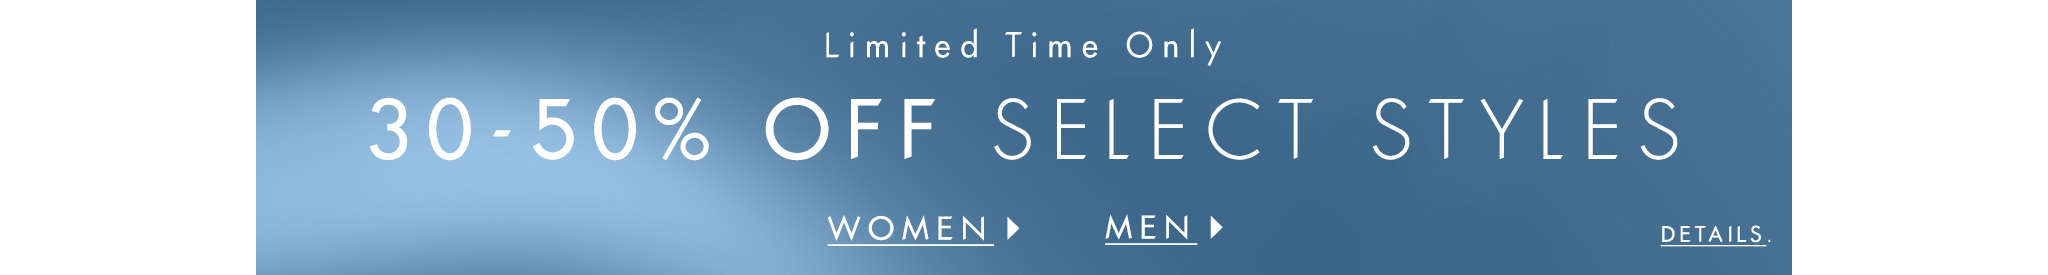 Limited Time: 30-50% Off Select Styles